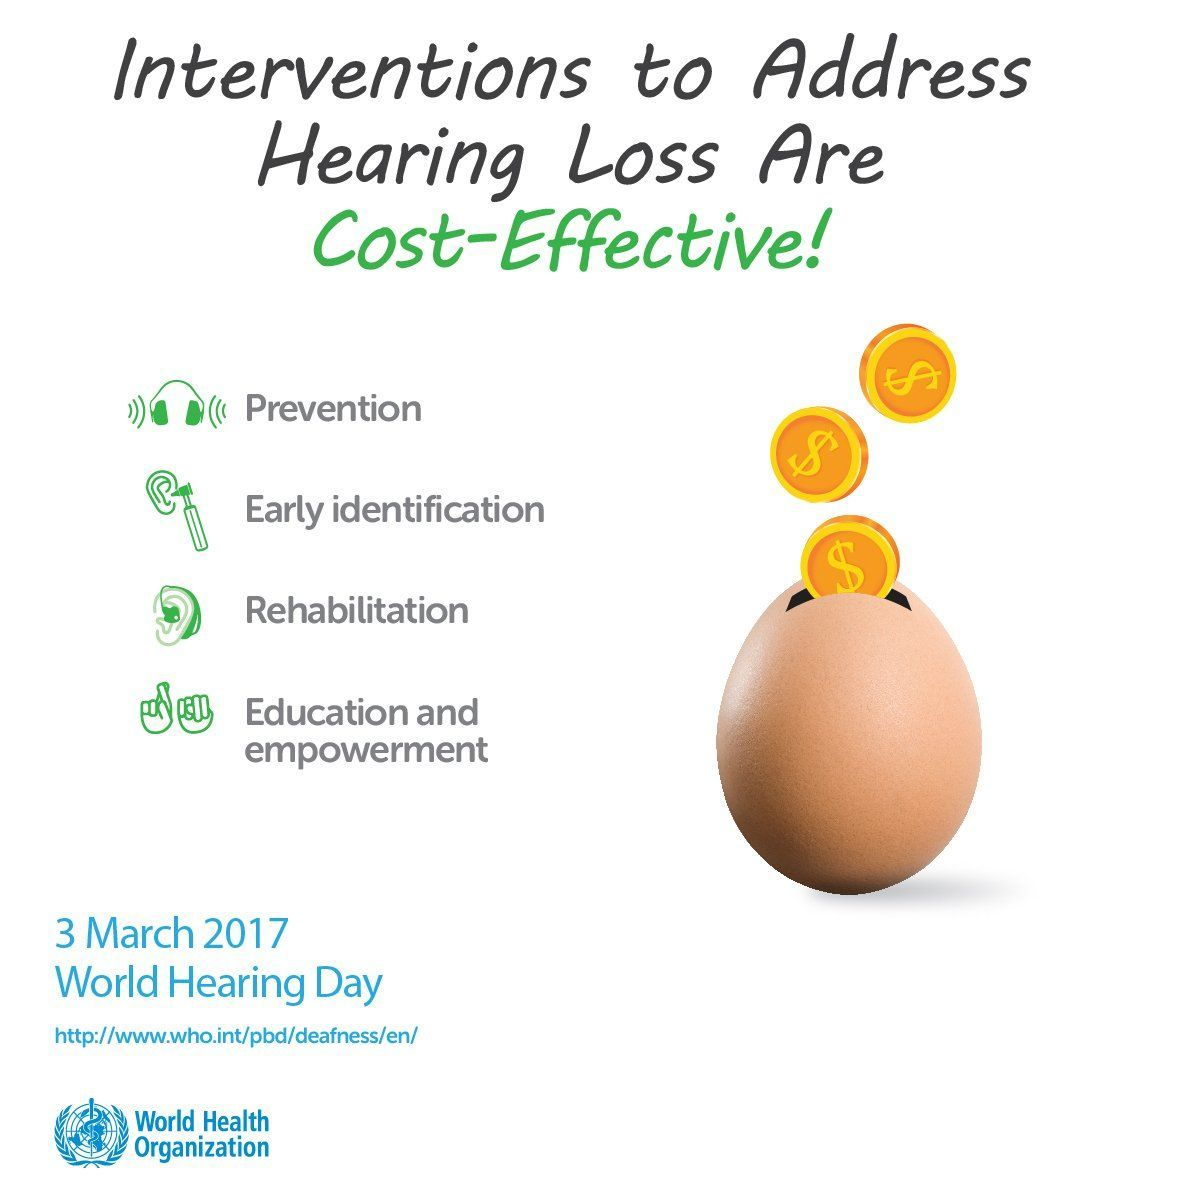 test Twitter Media - .@InisCom team is very pleased to have worked with @WHO for 3rd time on annual hearing loss campaign https://t.co/JH9cm9sZ9x https://t.co/UqVb2e9UaU